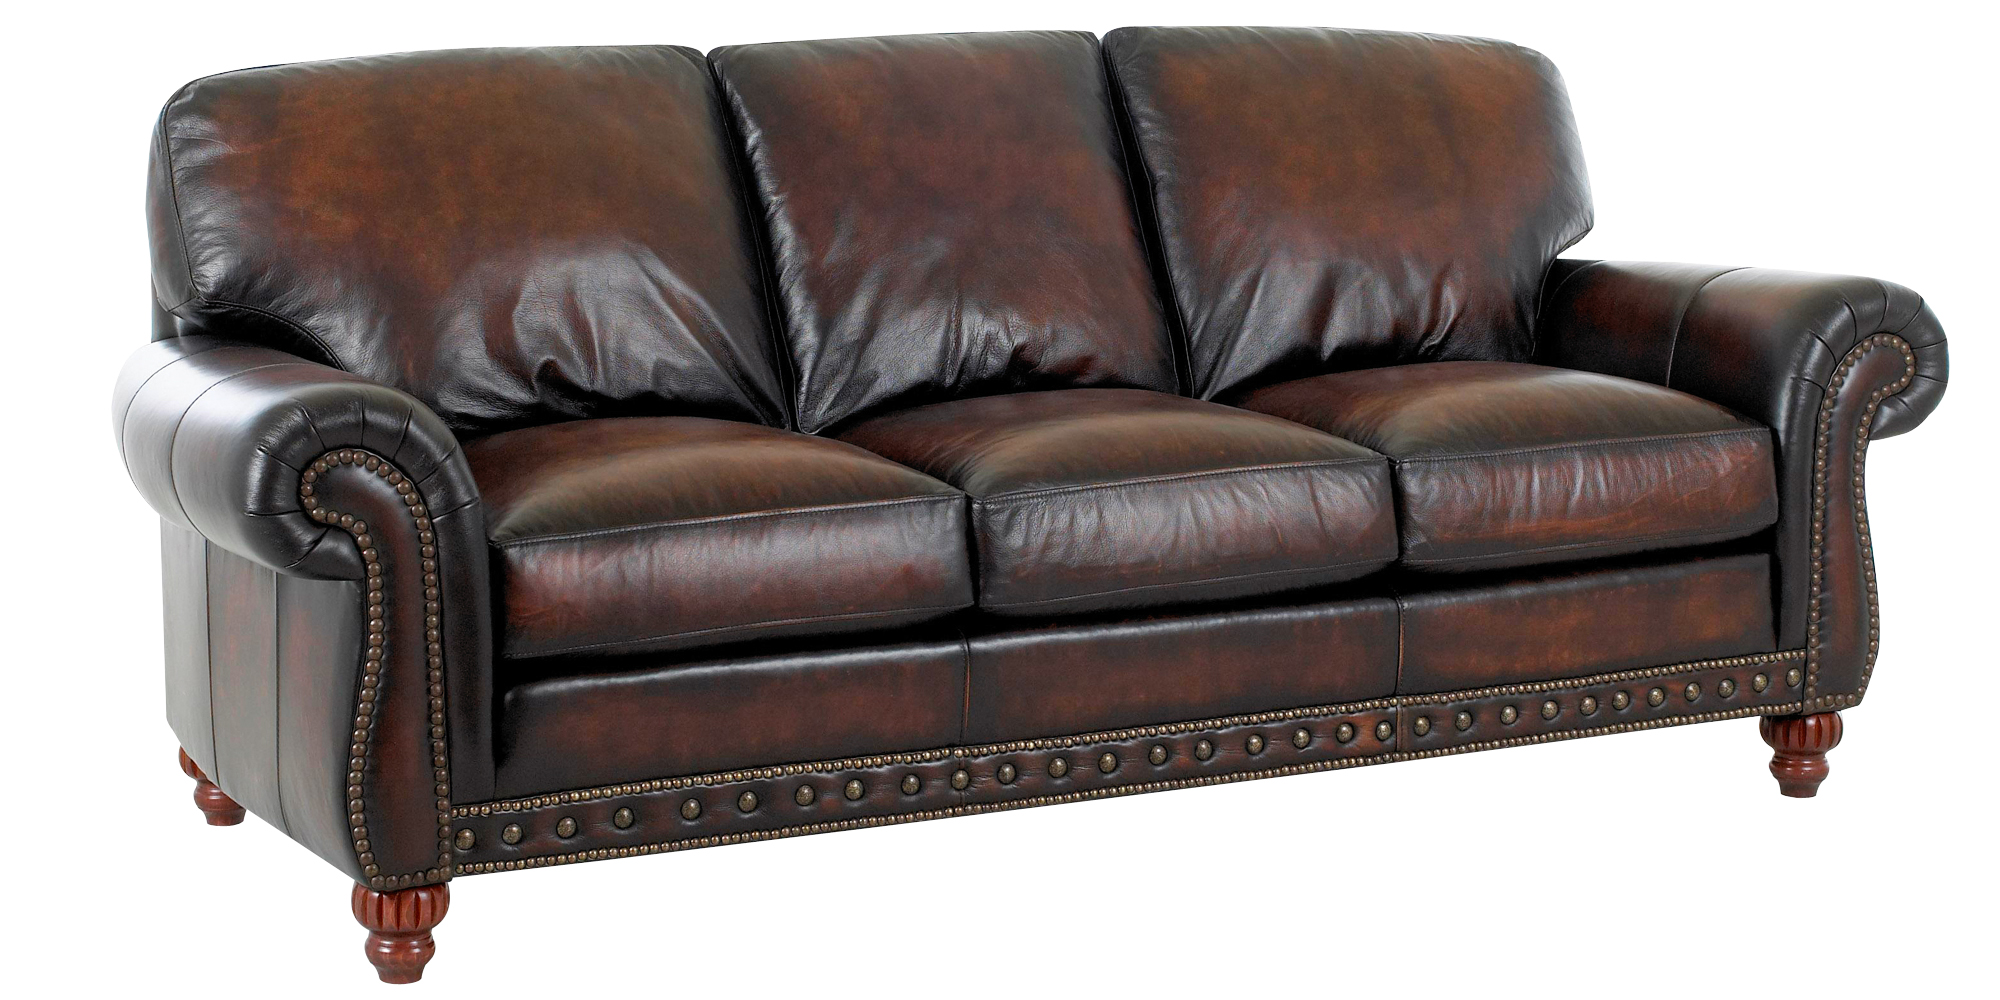 Traditional European Old World Leather Sofa Set Club